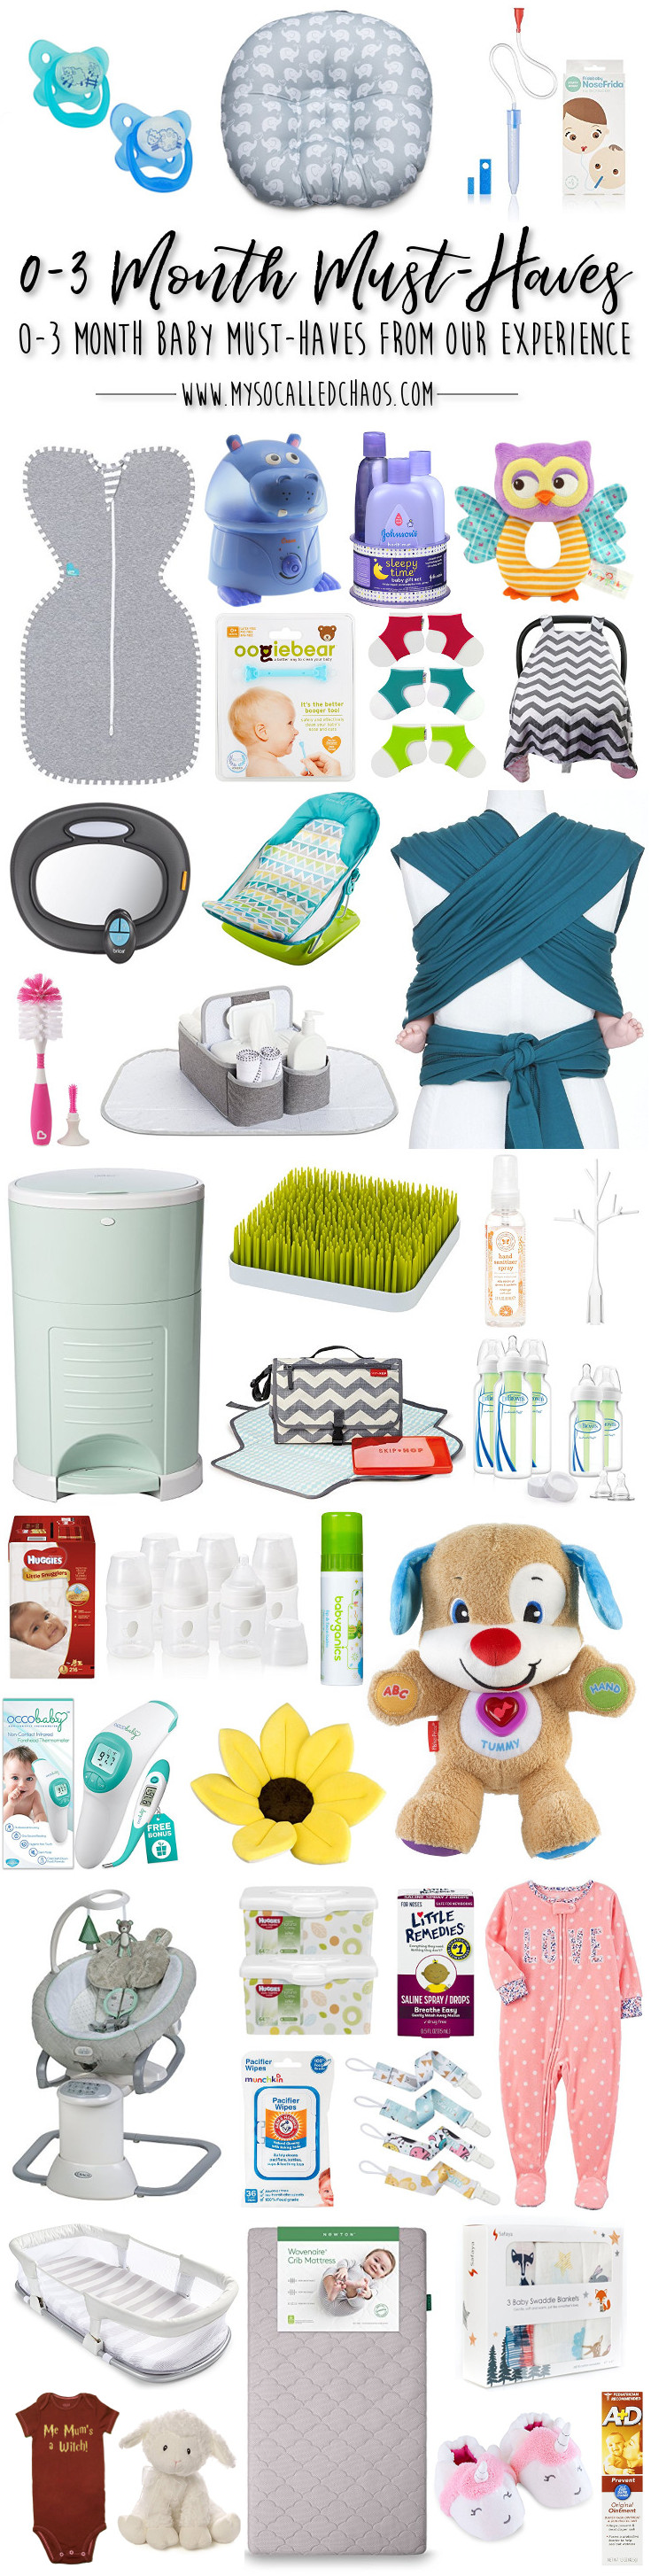 A pinnable image showing the products for the post titled